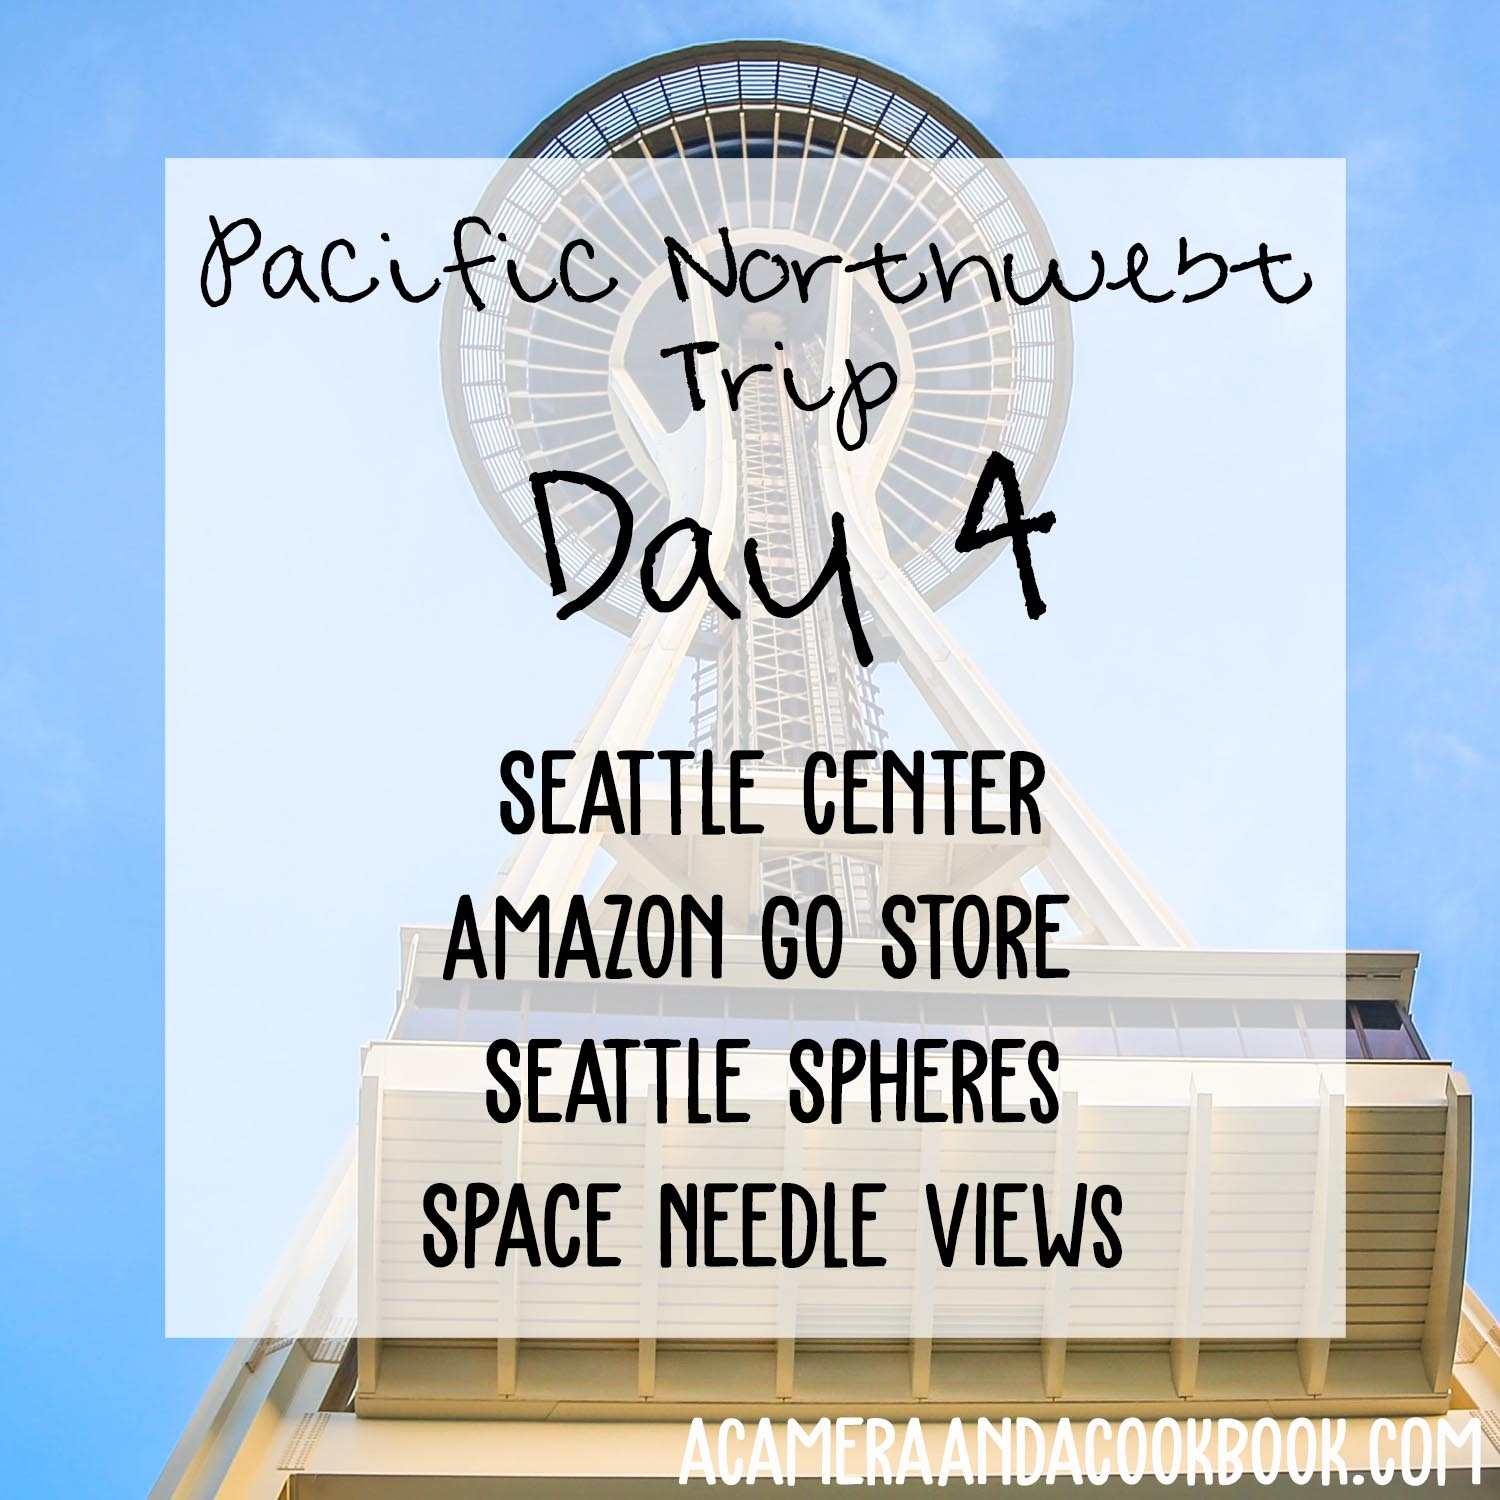 Pacific NW Trip: Day 4